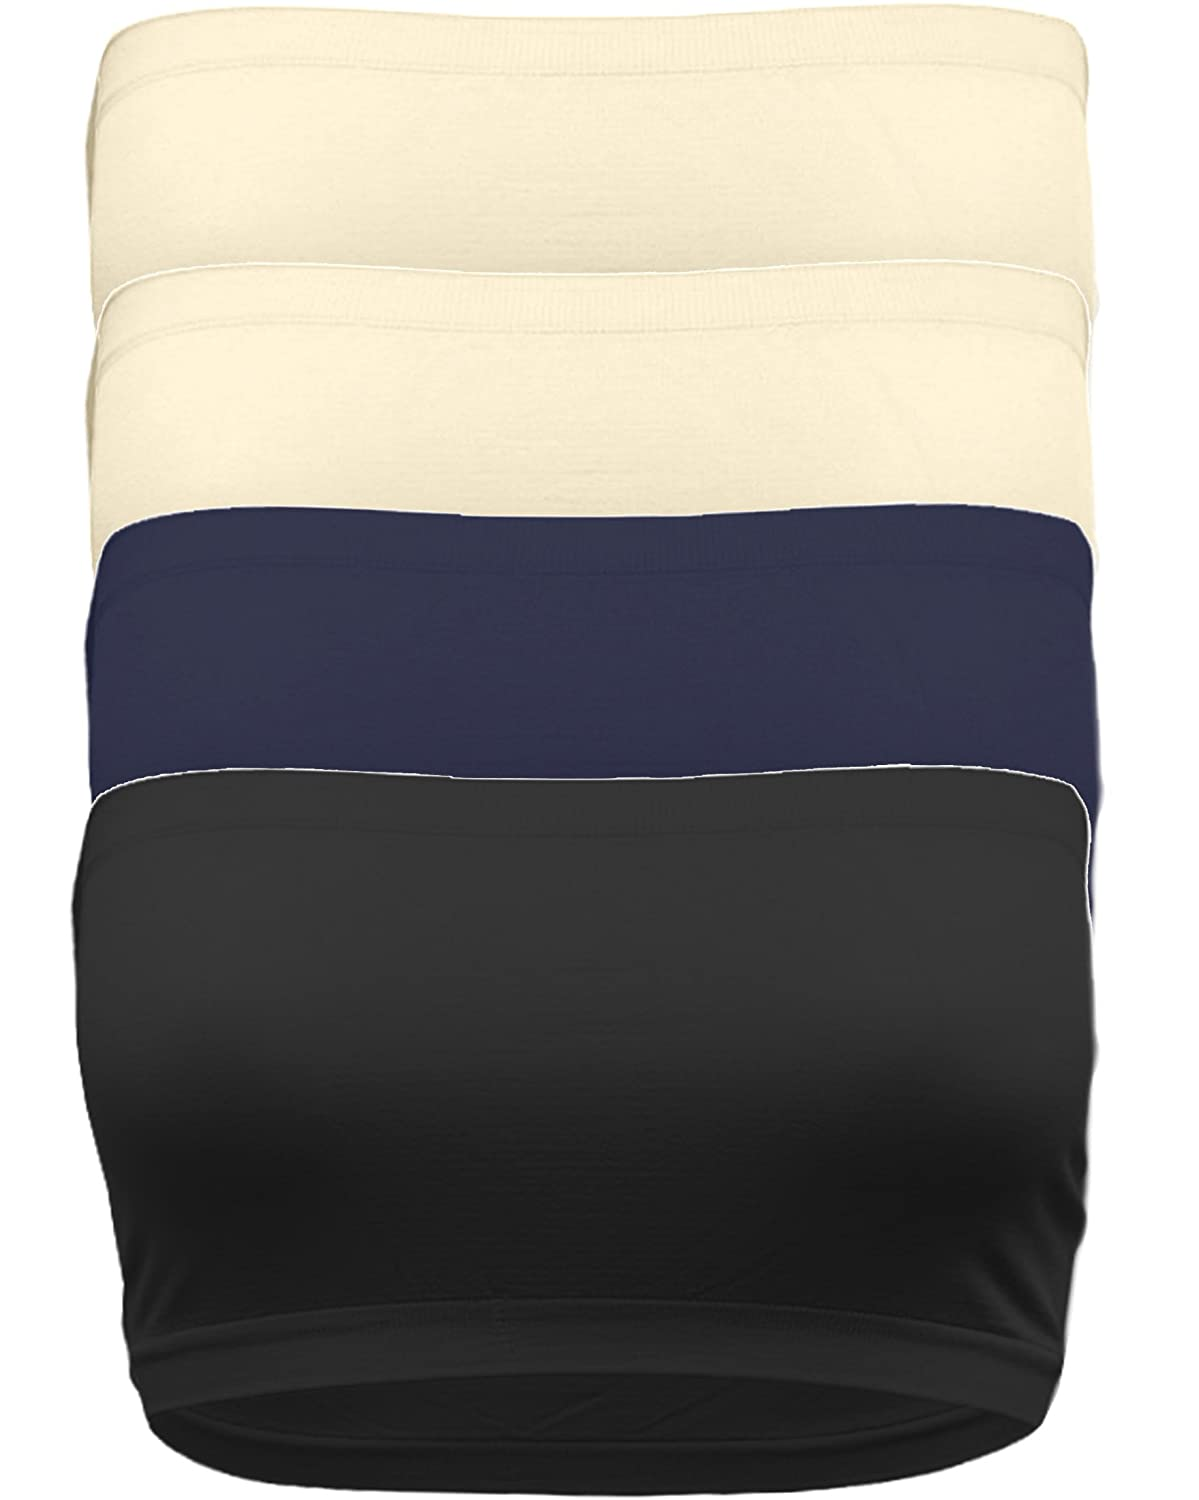 Strapless Bandeau Bra Seamless Stretchy Crop Tube Top Pack Sets of 4 or Single